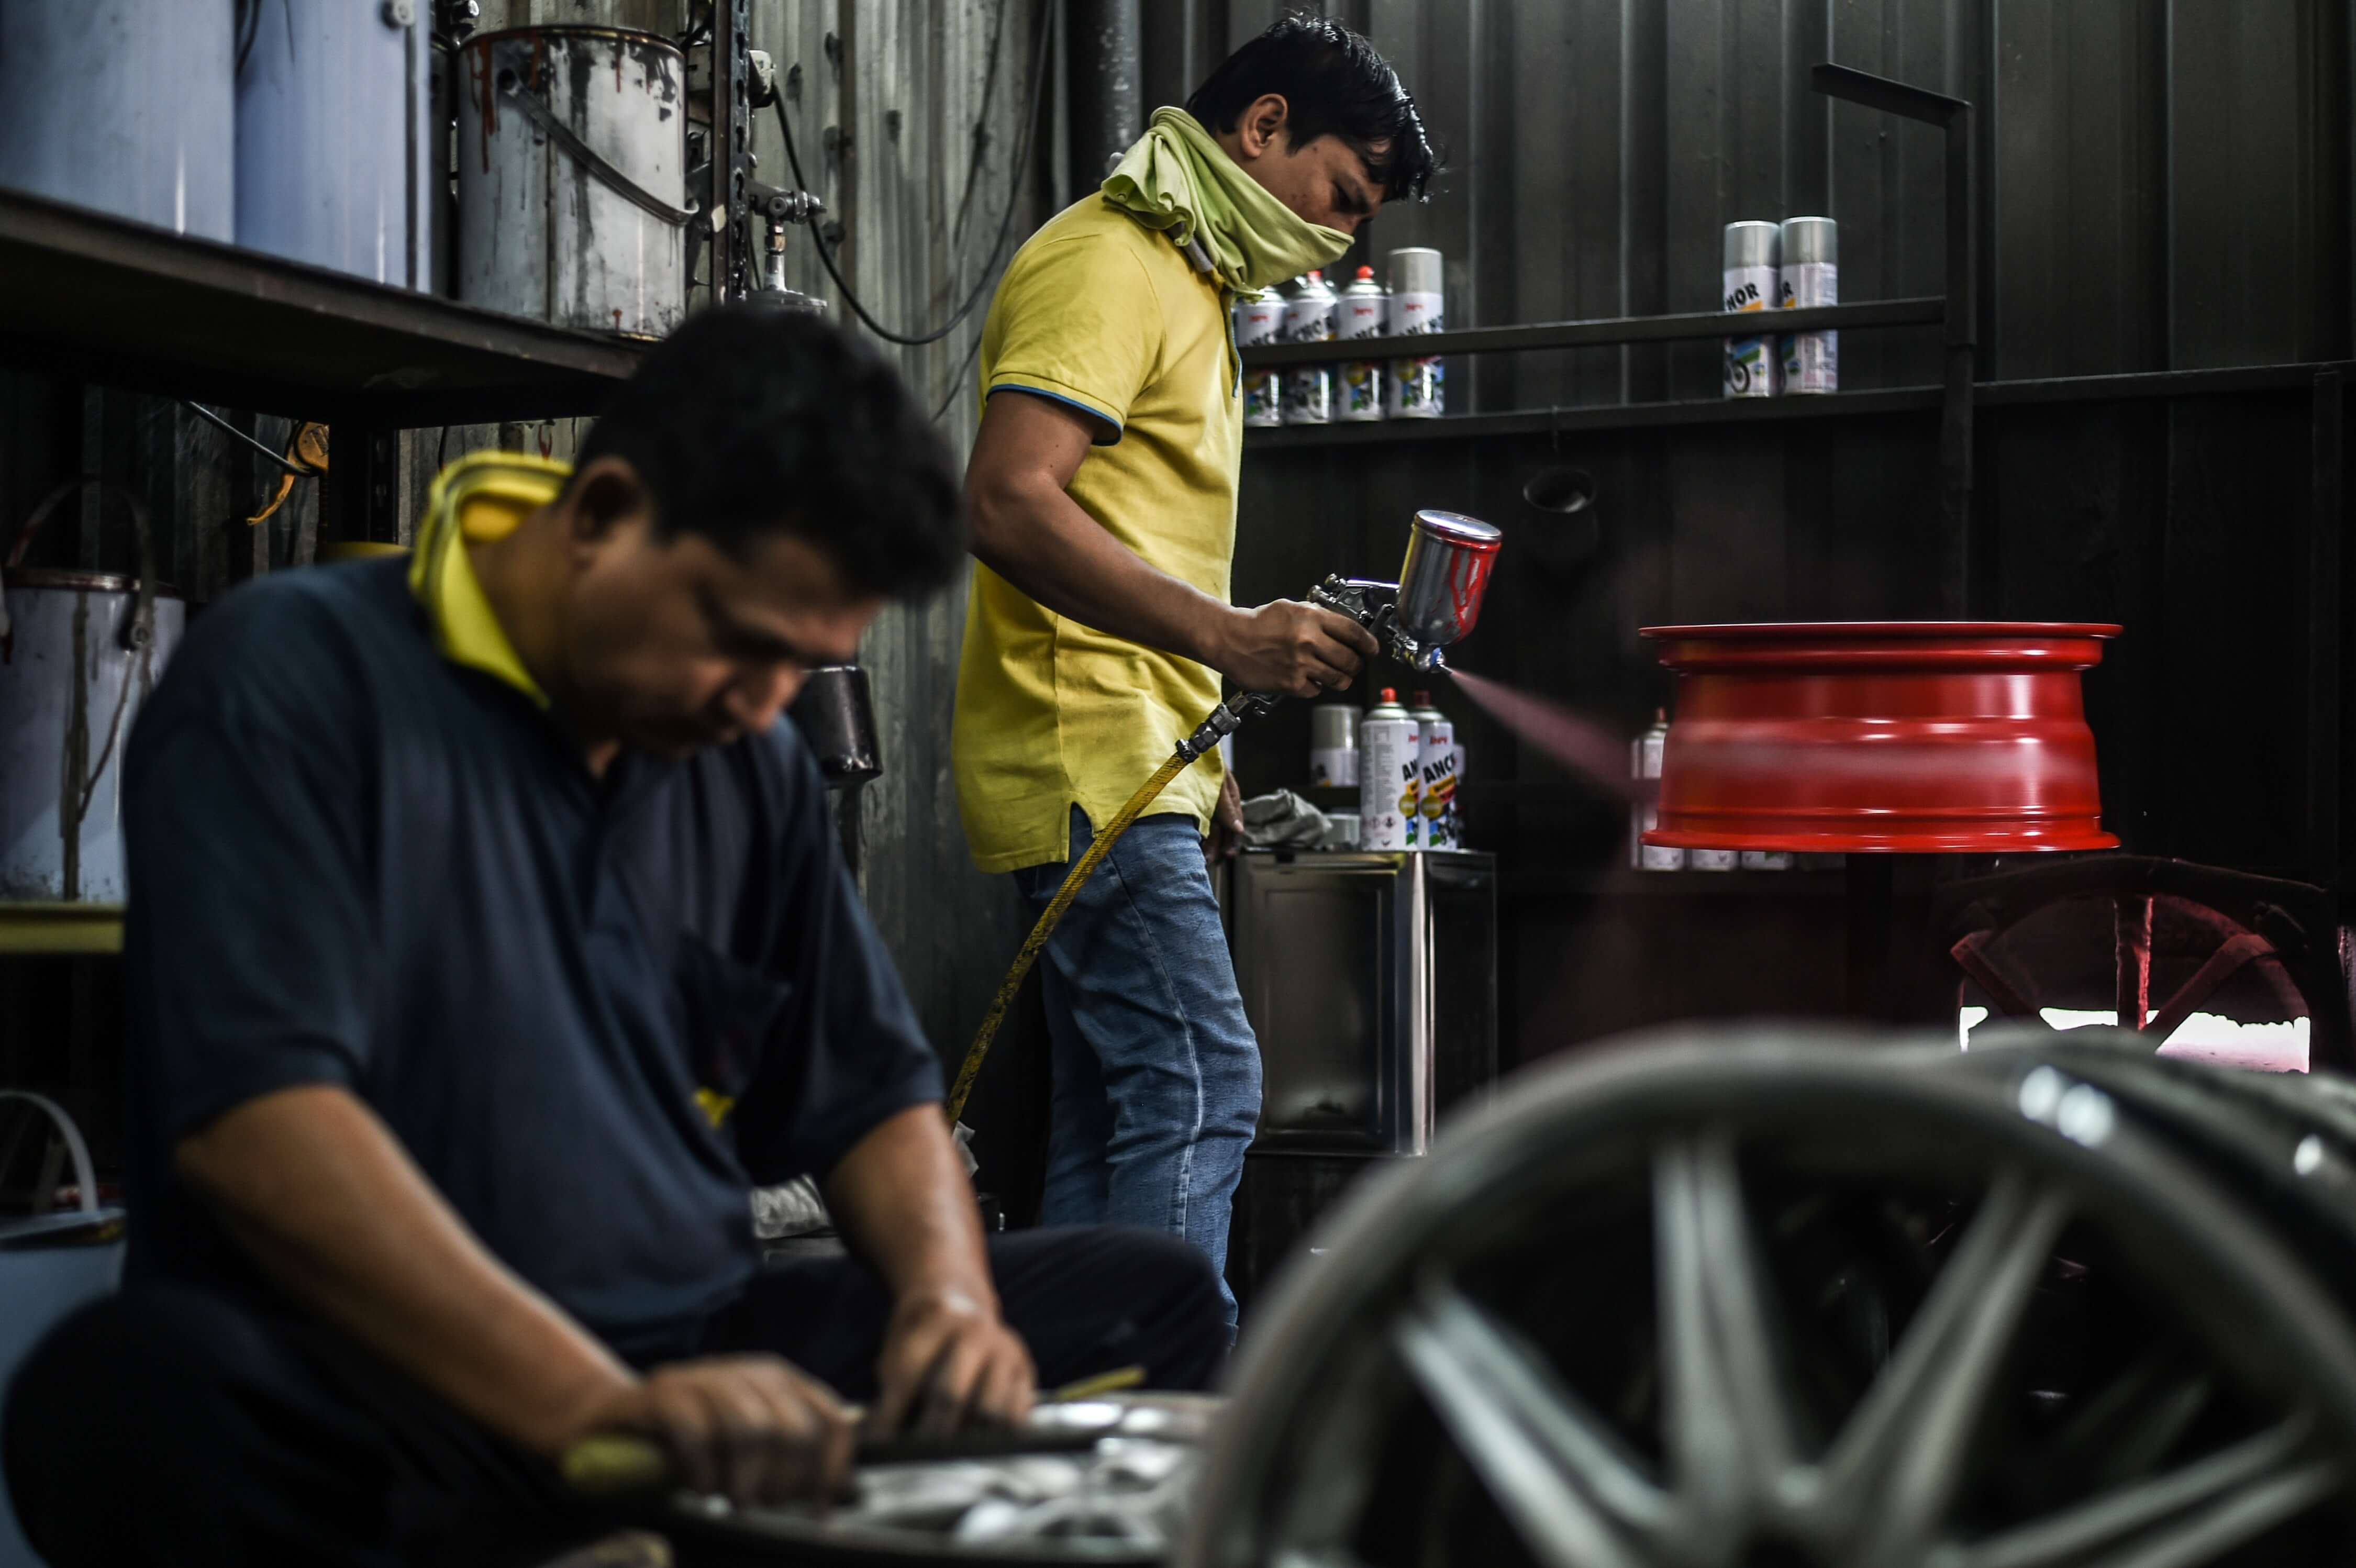 In many respects, Malaysian SMEs have a long way to go before they transform into digital-savvy businesses. Source: Mohd Rasfan / AFP